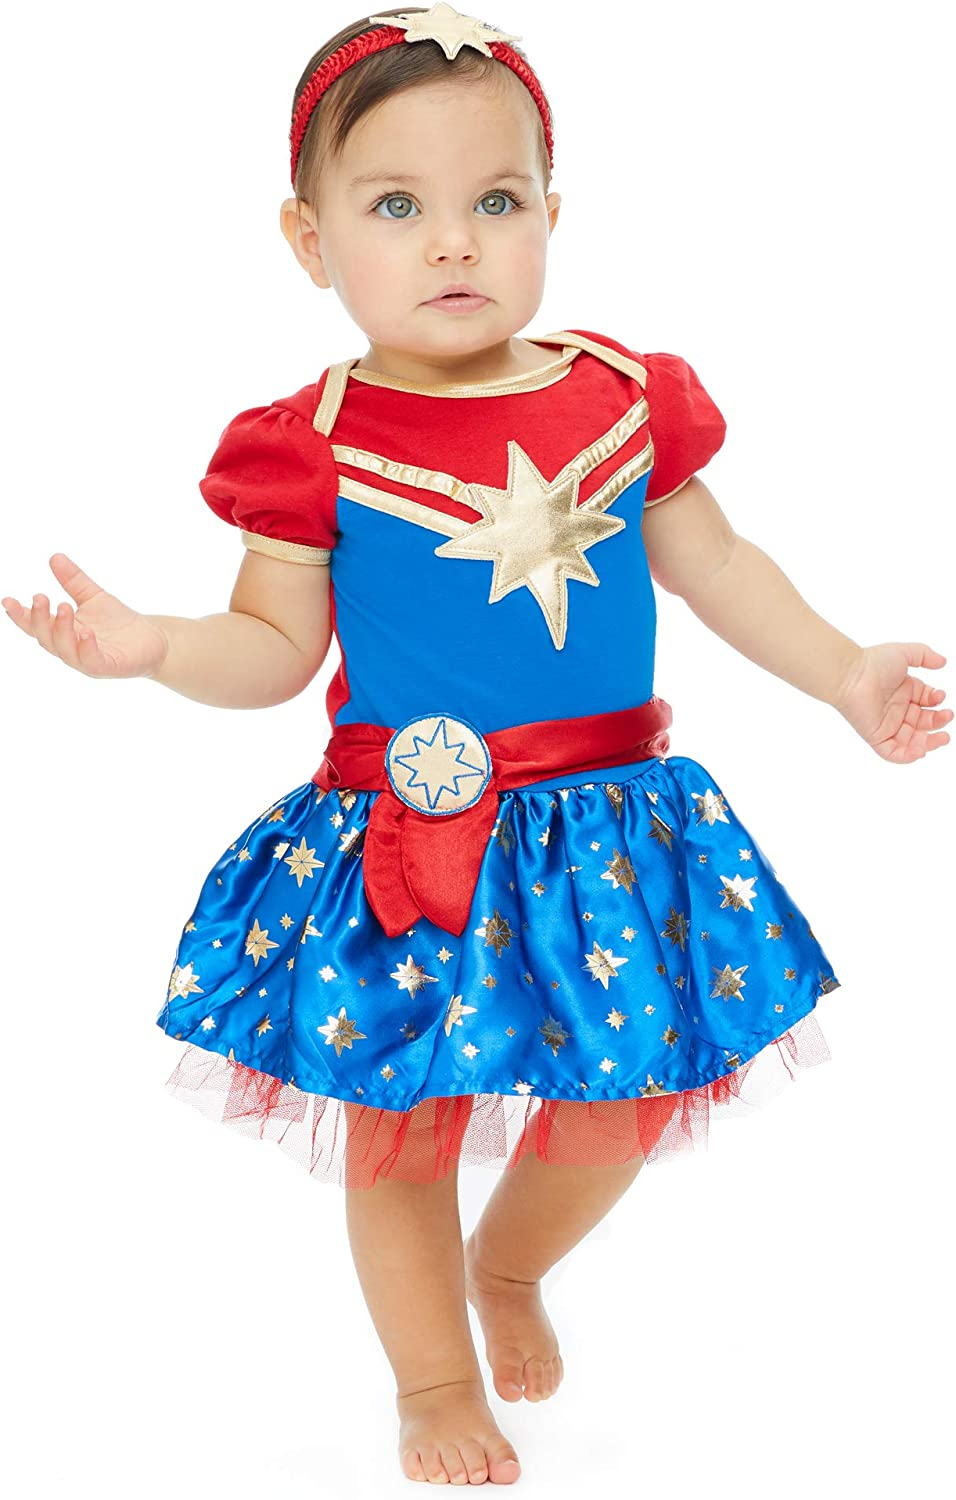 Amazon Com Captain Marvel Girls Short Sleeve Costume Dress Headband Superhero Cosplay Clothing Childrens capes octonauts toddler halloween costumes costumes cape with mask for kwazii barnacles dashi peso cosplay. captain marvel girls short sleeve costume dress headband superhero cosplay